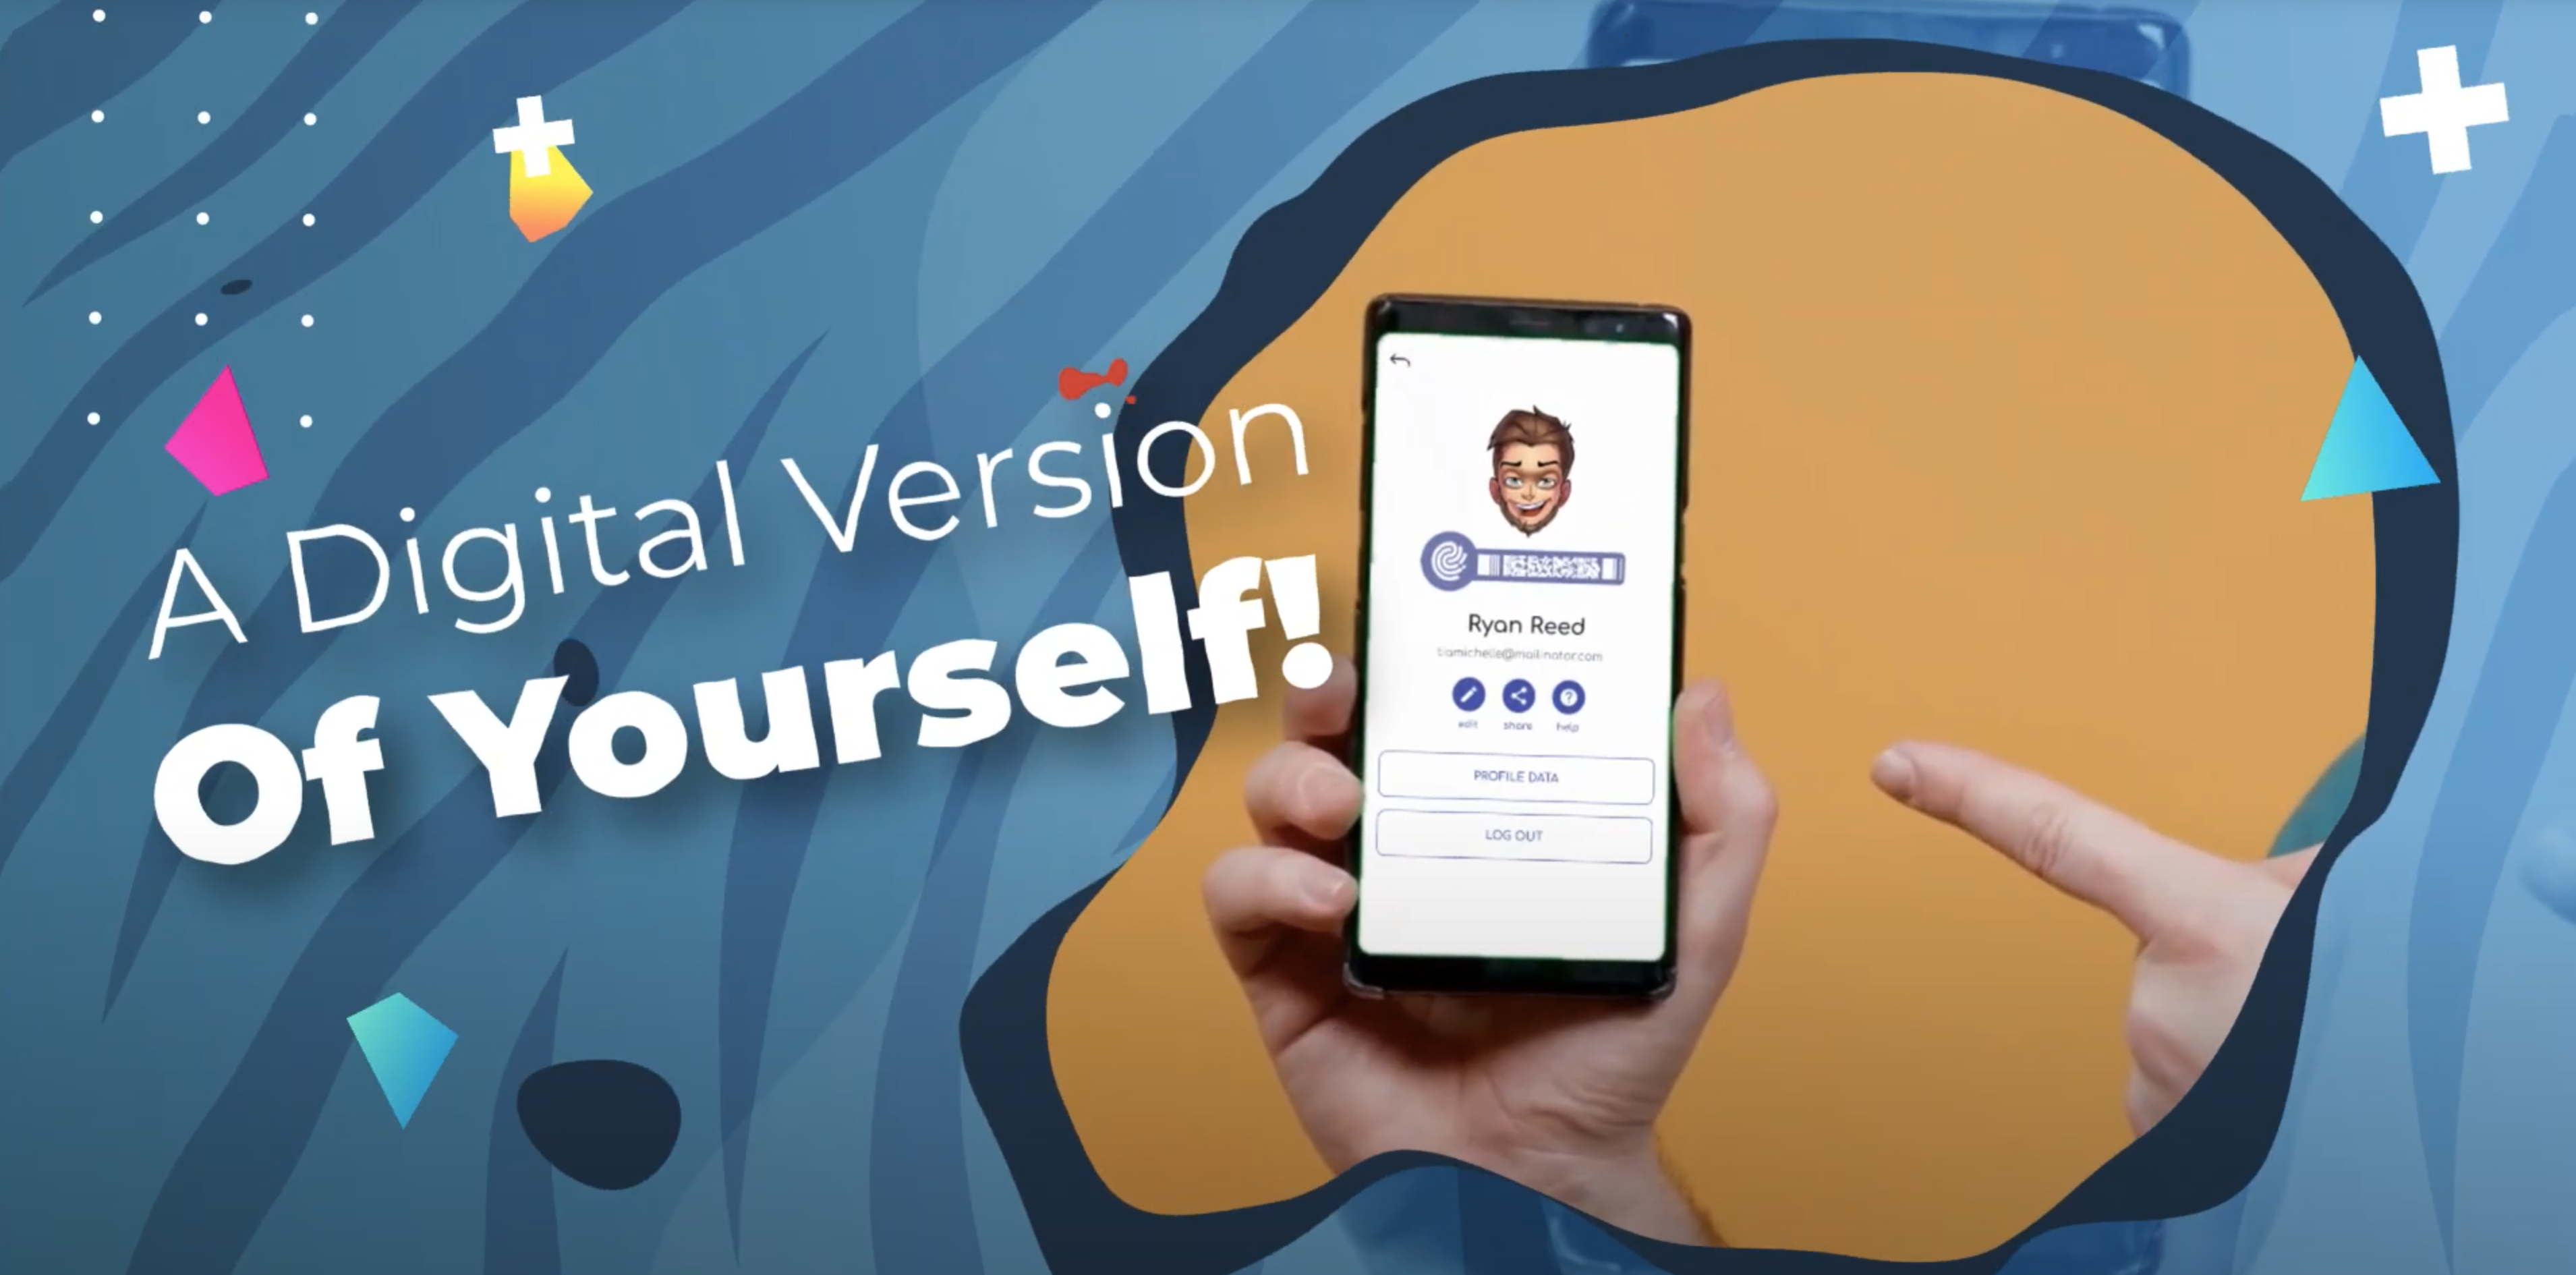 Liquid Avatar protects your online identity in cool new ways